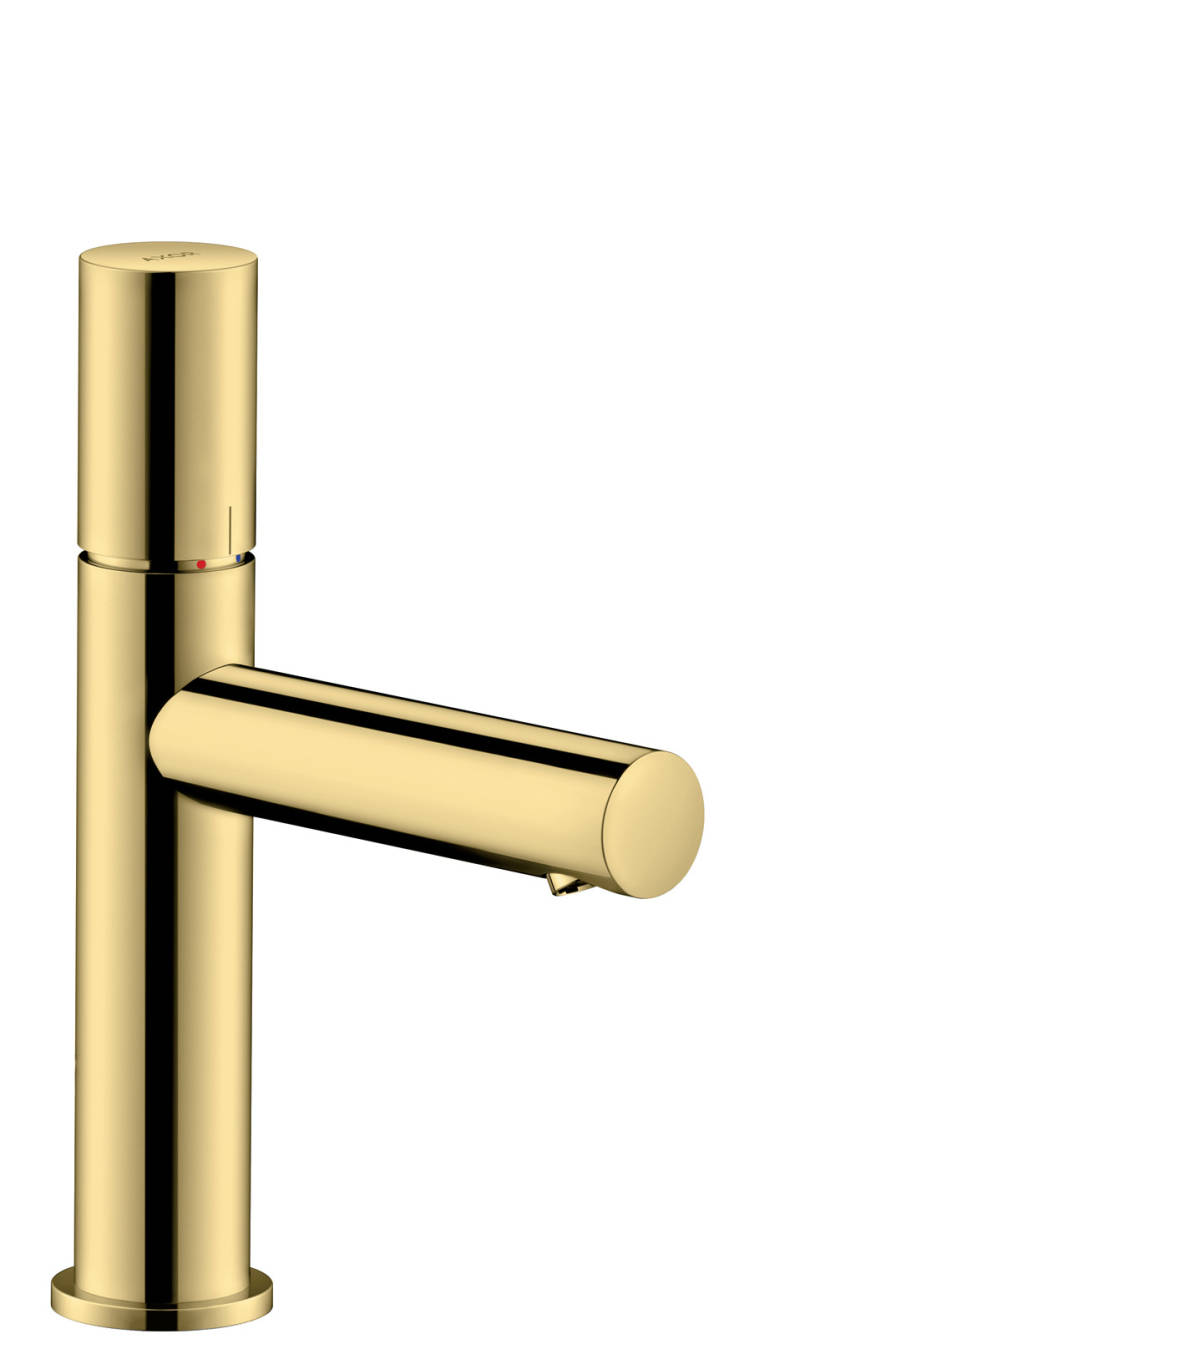 Single lever basin mixer 110 with zero handle and waste set, Polished Brass, 45002930